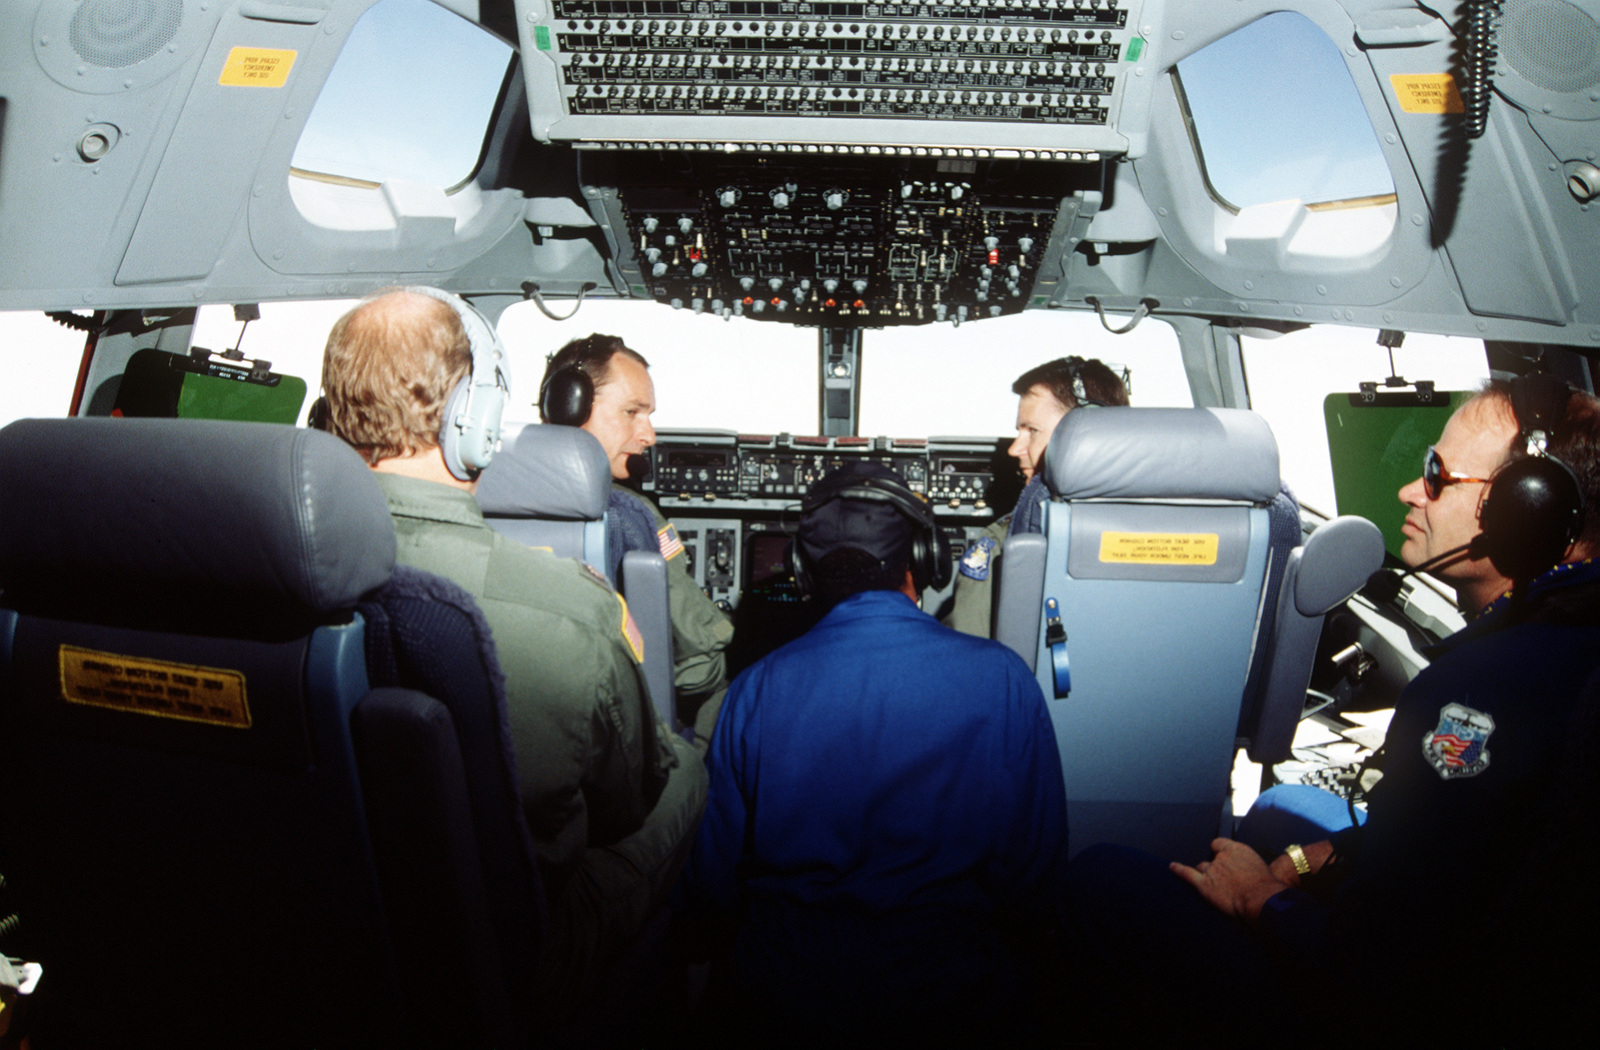 Interior of the C-17, the first one to be delivered to the Air Force, cockpit enroute from McDonnell Douglas plant in Long Beach, CA. Aircraft Commander, LTC Giles Gentry, 437th Airlift Wing (left) at the controls and co-pilot, MAJ Joseph B. Niemeyer, 17th Airlift Squadron on right. On far left is second co-pilot, MAJ Paul Skyes, 317th Airlift Squadron, on far right is Mr. David Swain, McDonnell Douglas Vice President in charge of C-17 production and in center is McDonnell Douglas avionics technician, Mr. Arlanders Ewing